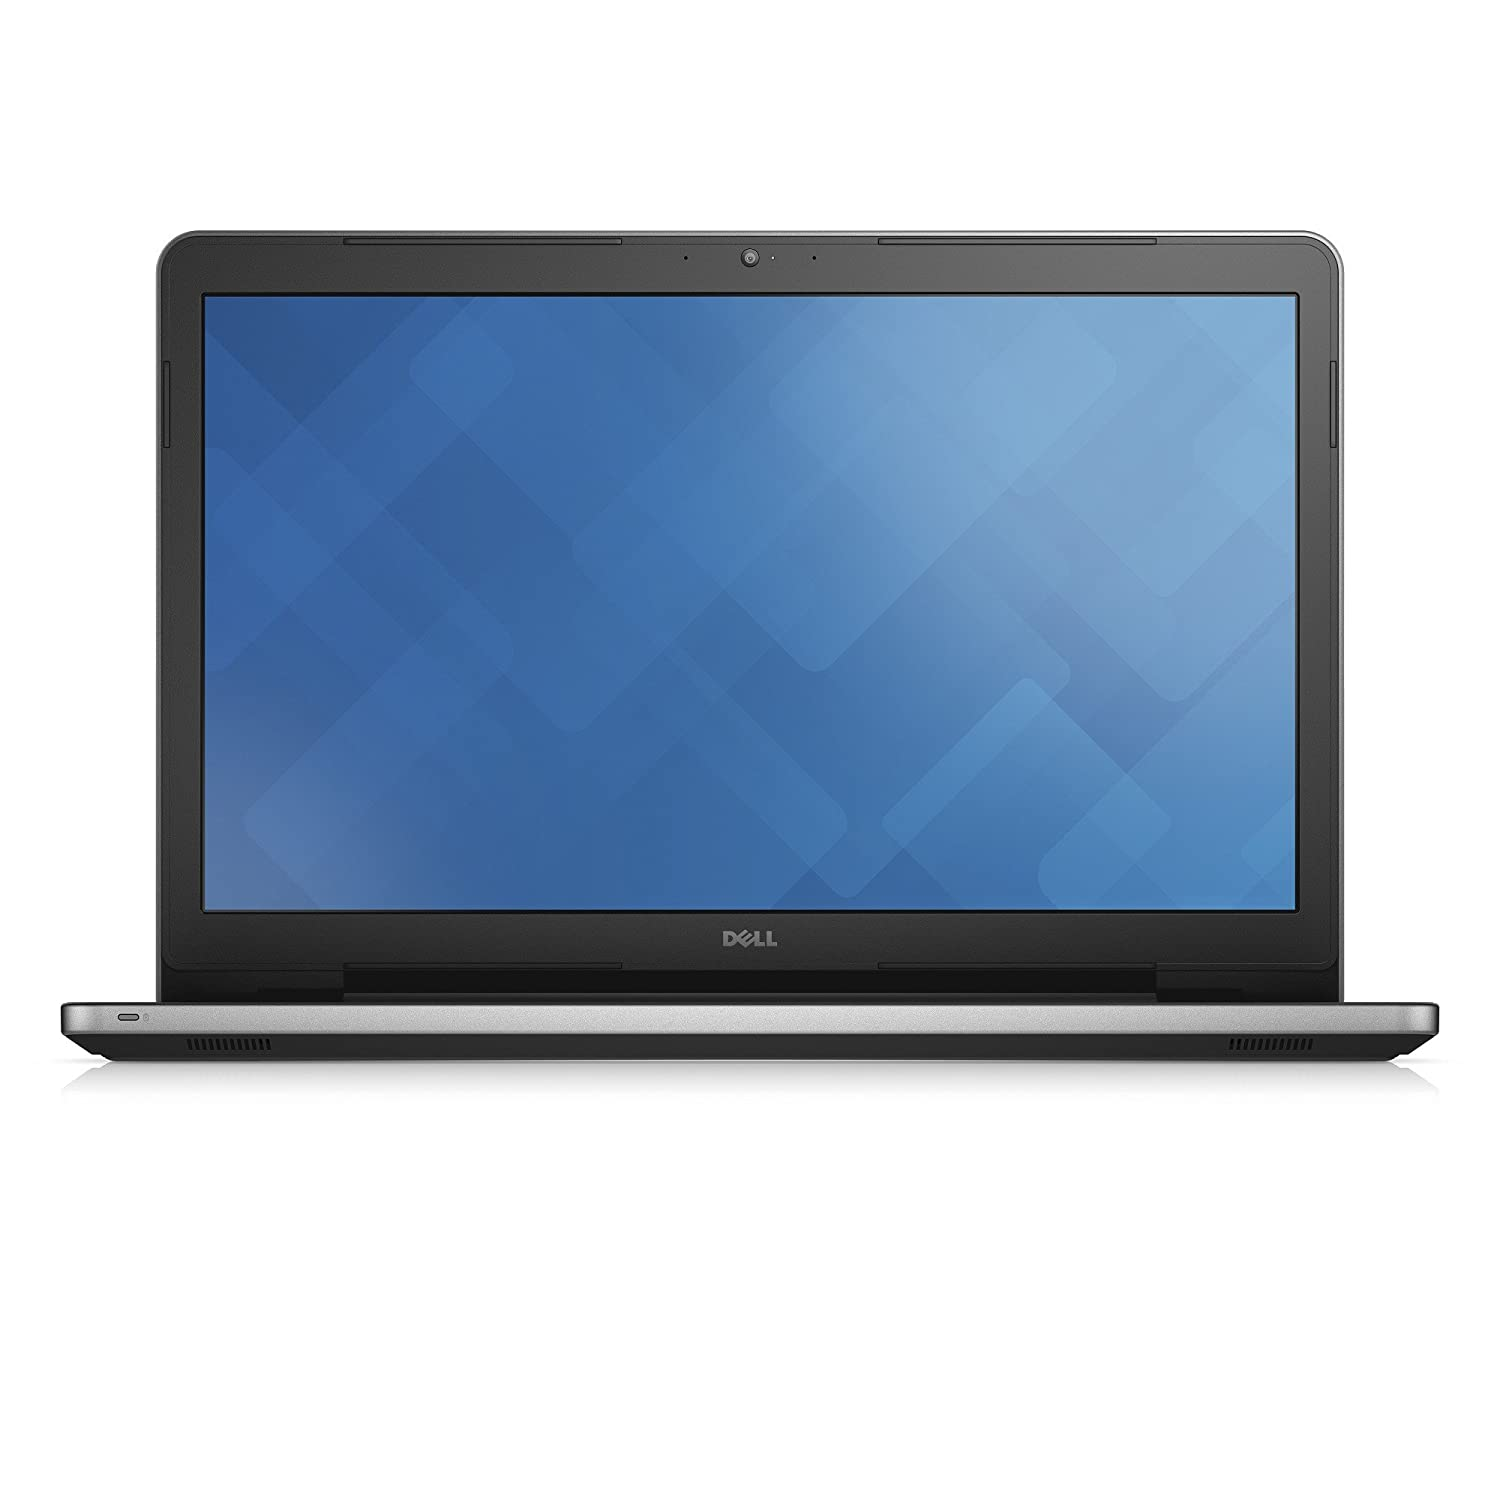 Dell Inspiron 17 5000 Series i5758-4286SLV 17.3-Inch Laptop